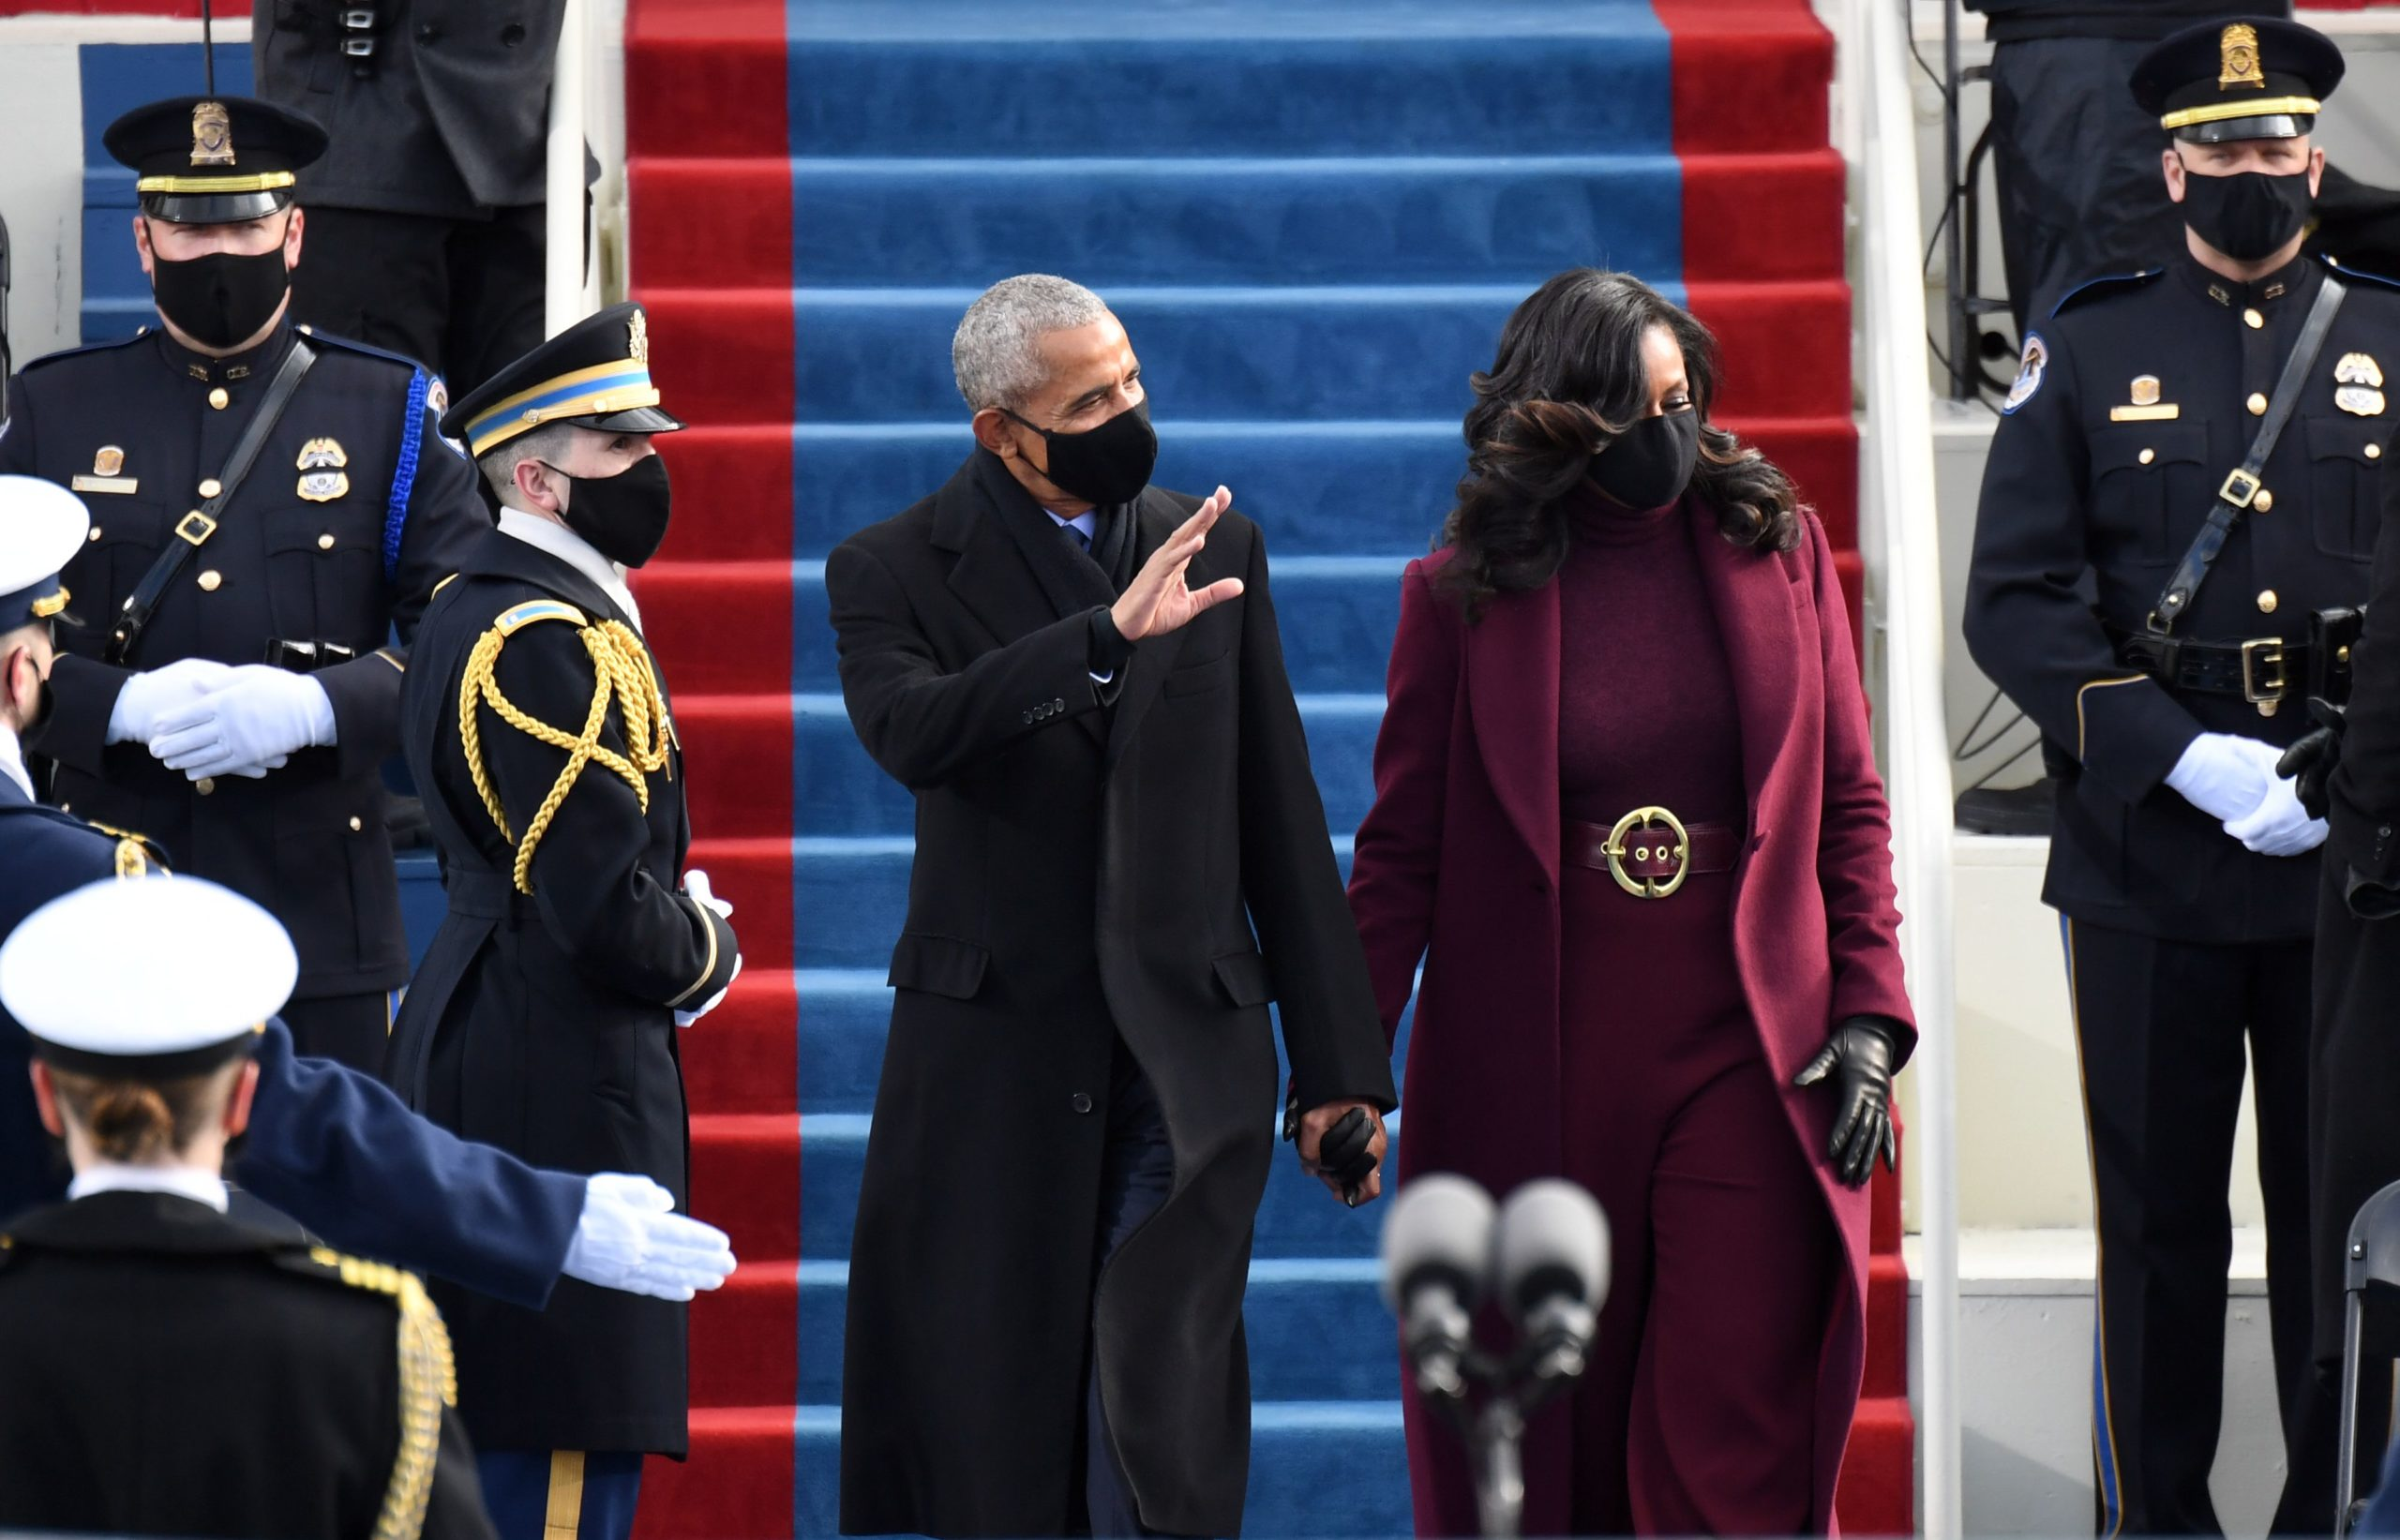 Former US President Barack Obama and former US First Lady Michelle Obama arrive for the inauguration of Joe Biden as the 46th US President on January 20, 2021, at the US Capitol in Washington, DC. (Photo by ANDREW CABALLERO-REYNOLDS / AFP) (Photo by ANDREW CABALLERO-REYNOLDS/AFP via Getty Images)